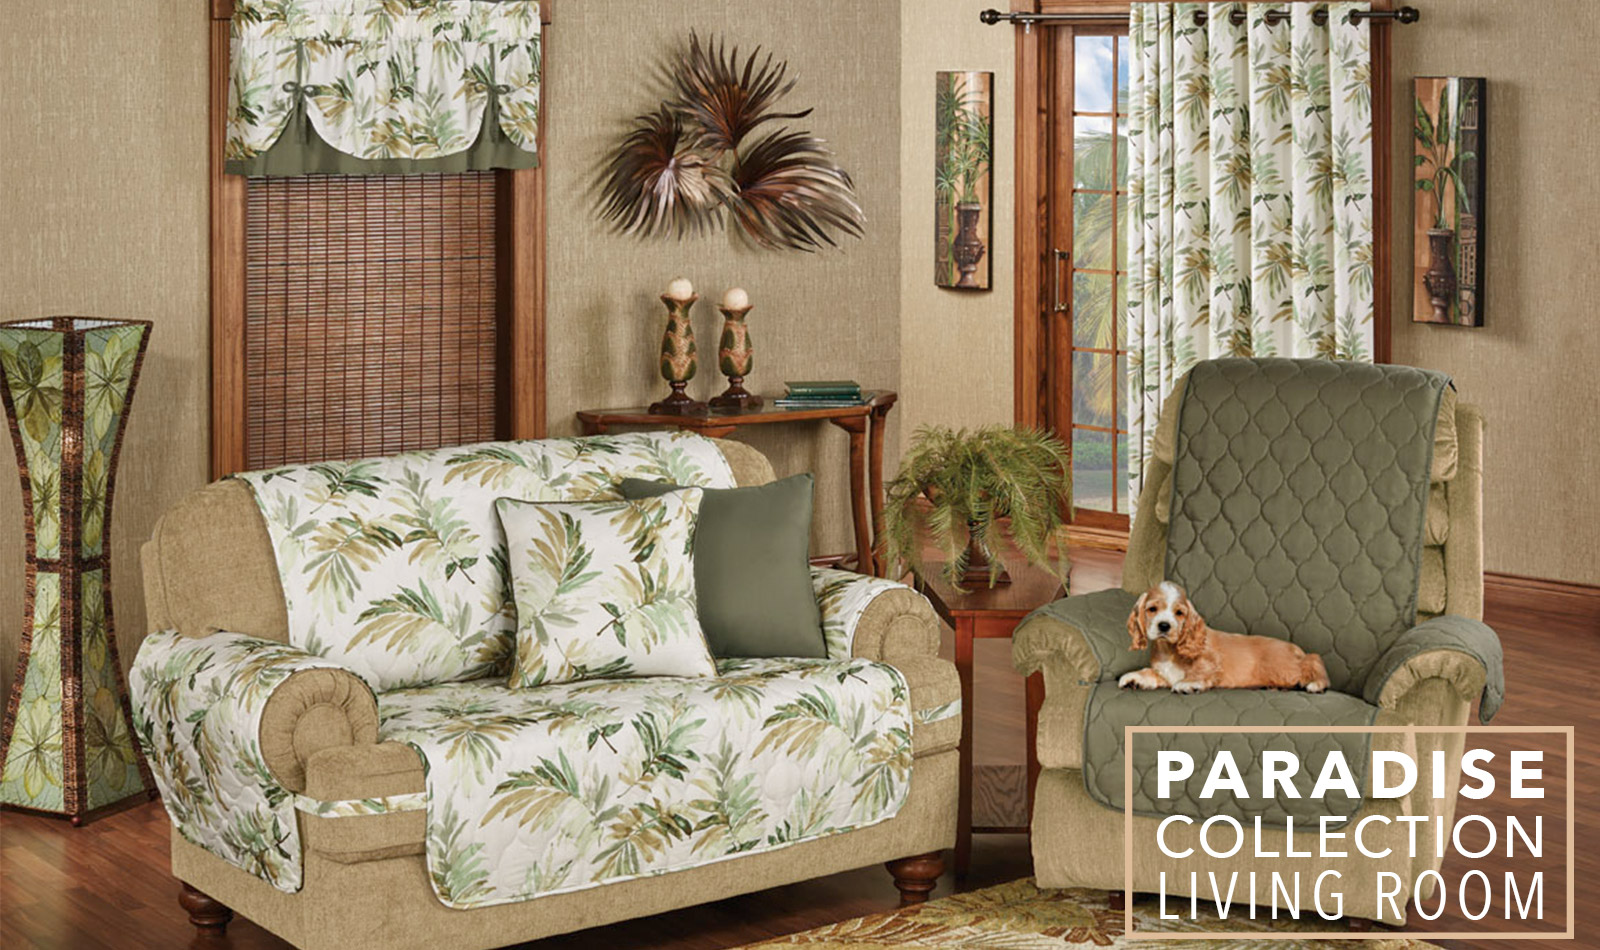 Get The Look - Paradise Tropical Living Room - Furniture Covers